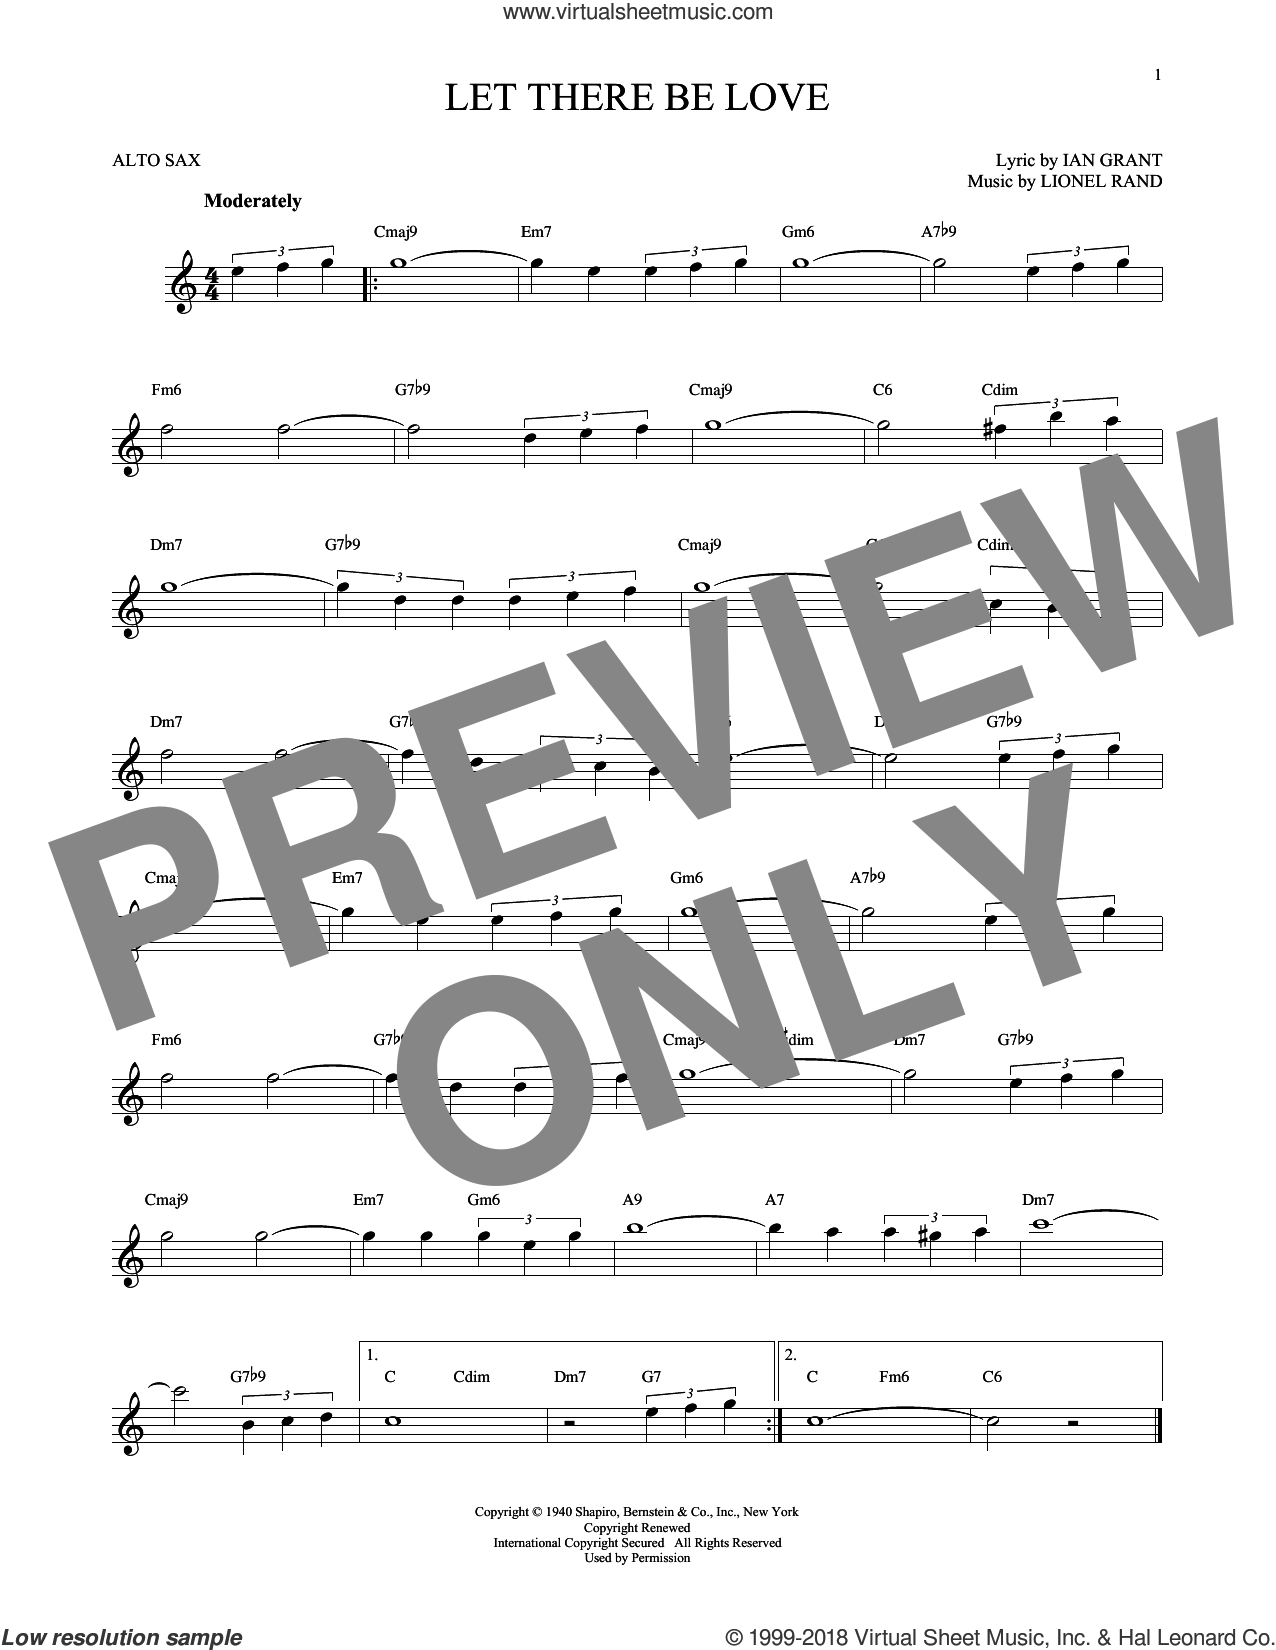 Let There Be Love sheet music for alto saxophone solo by Ian Grant and Lionel Rand, intermediate skill level